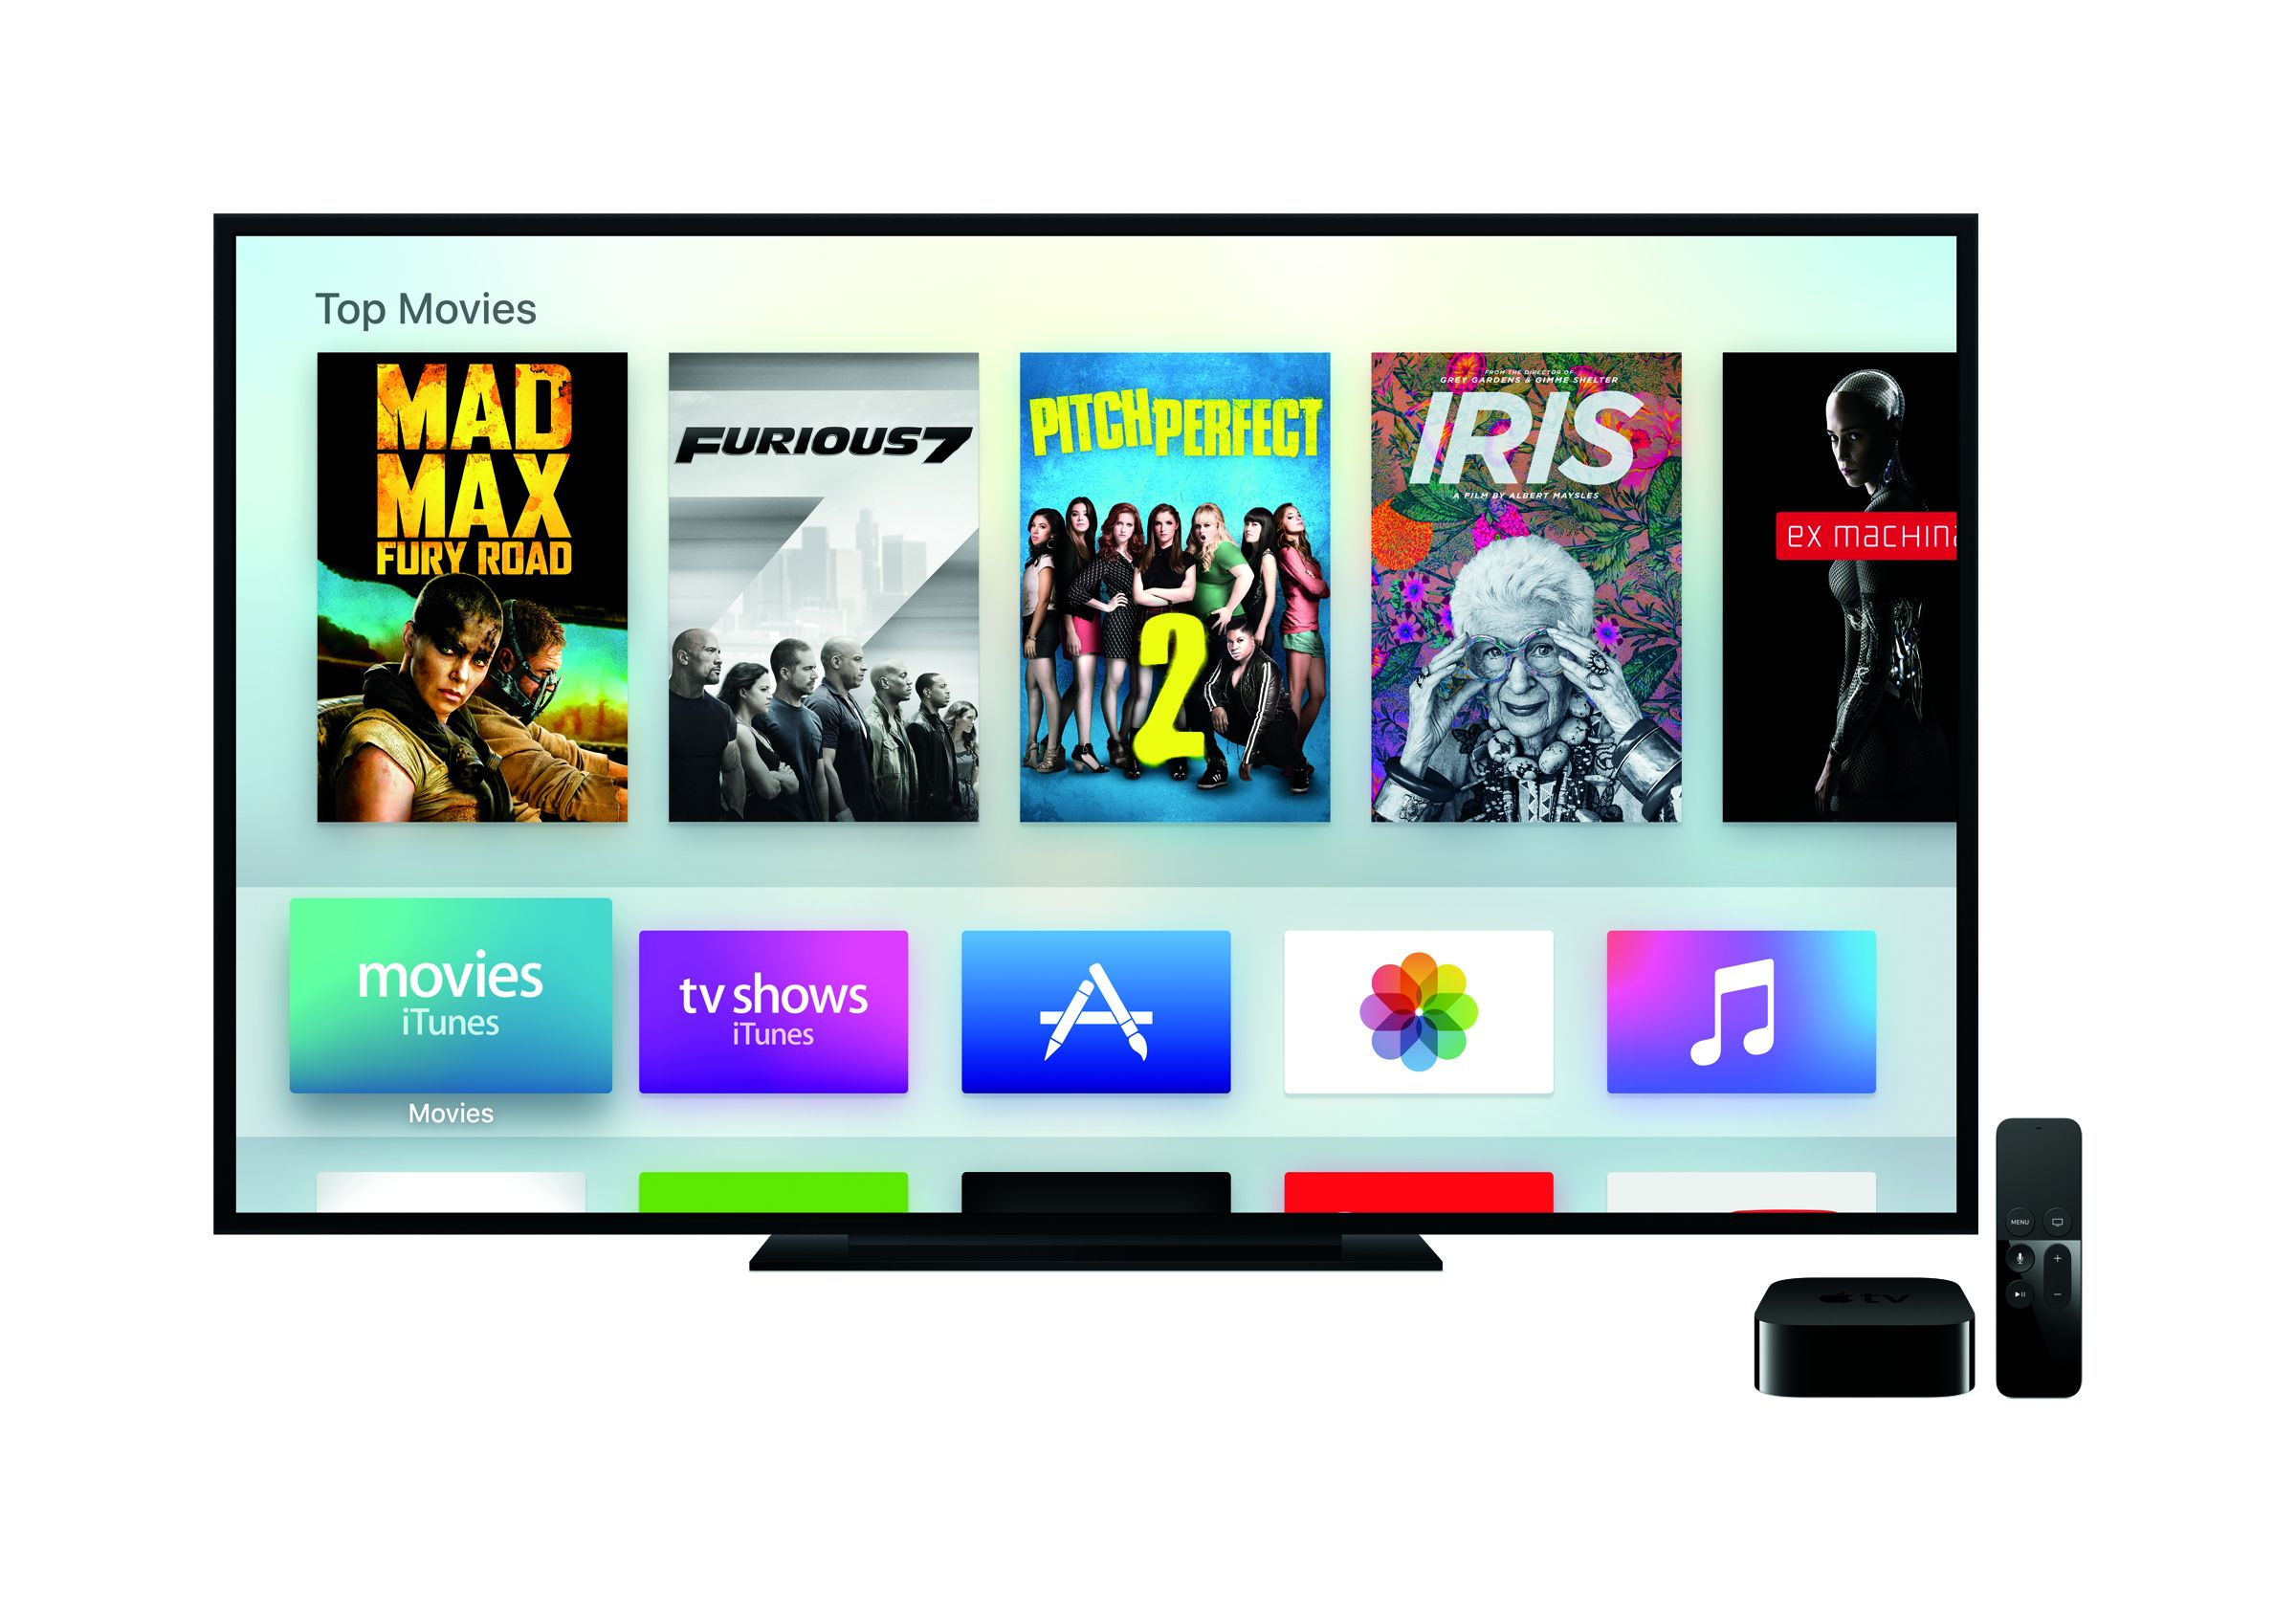 Apple TV 4th Generation press picture courtesy of Apple